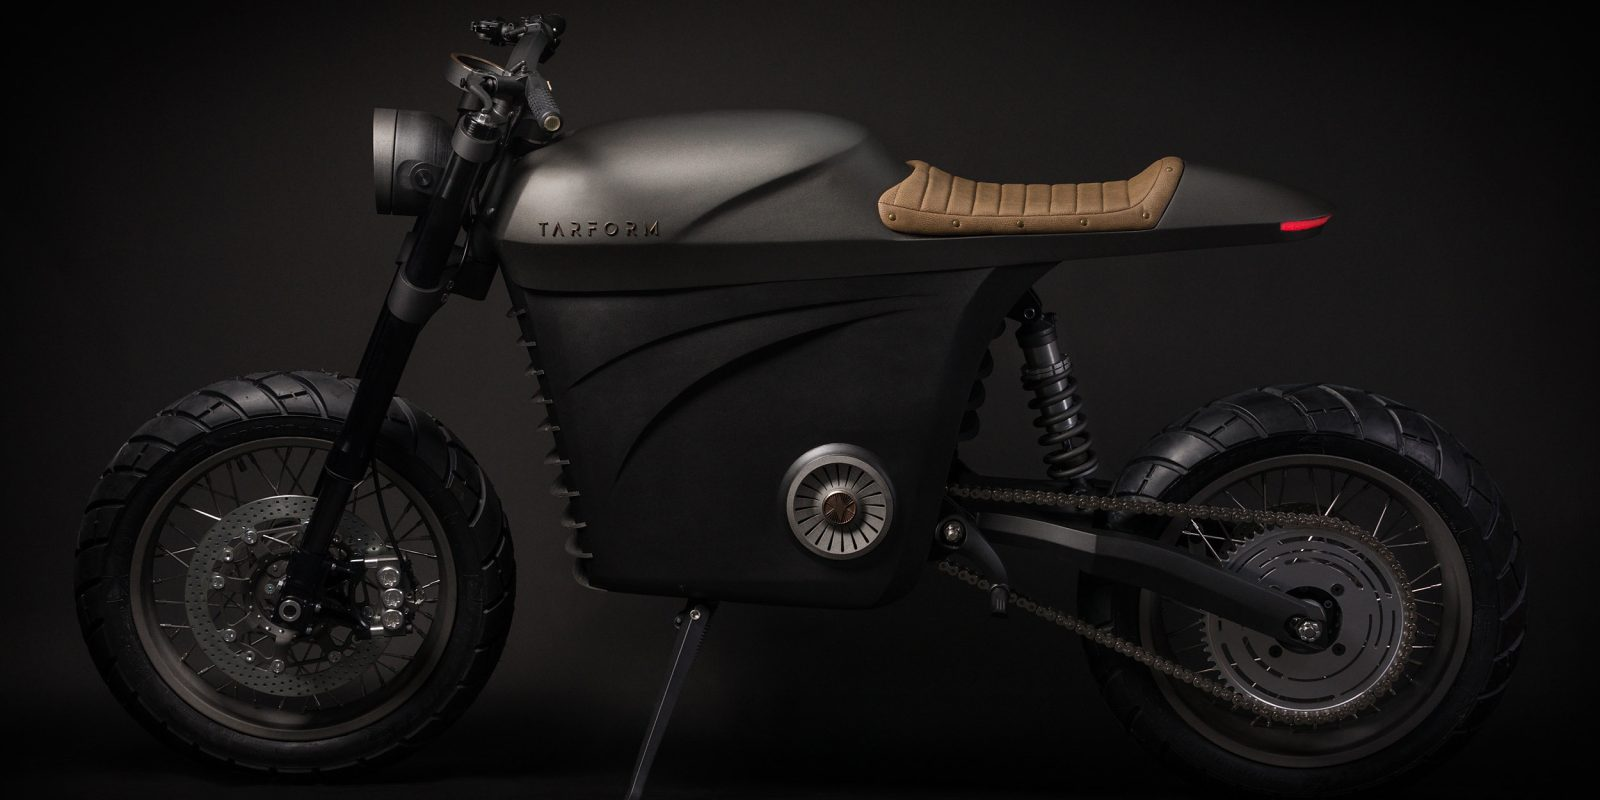 New US Startup Tarform Motorcycles Unveils Their First